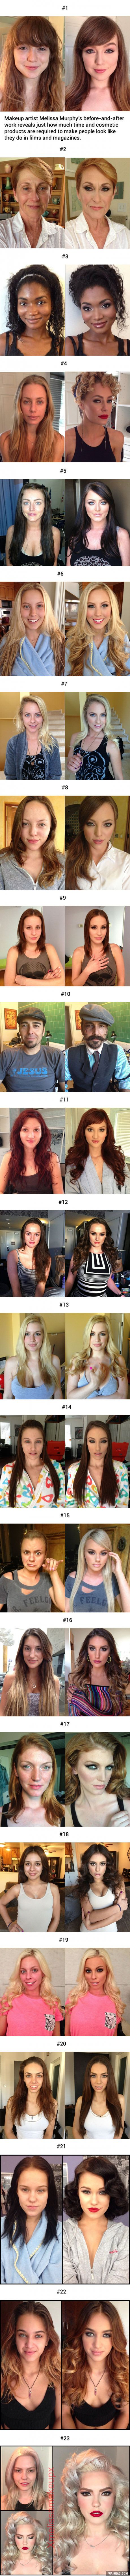 23 Before-And-After Pics Reveal The Power Of Makeup (By Melissa Murphy)